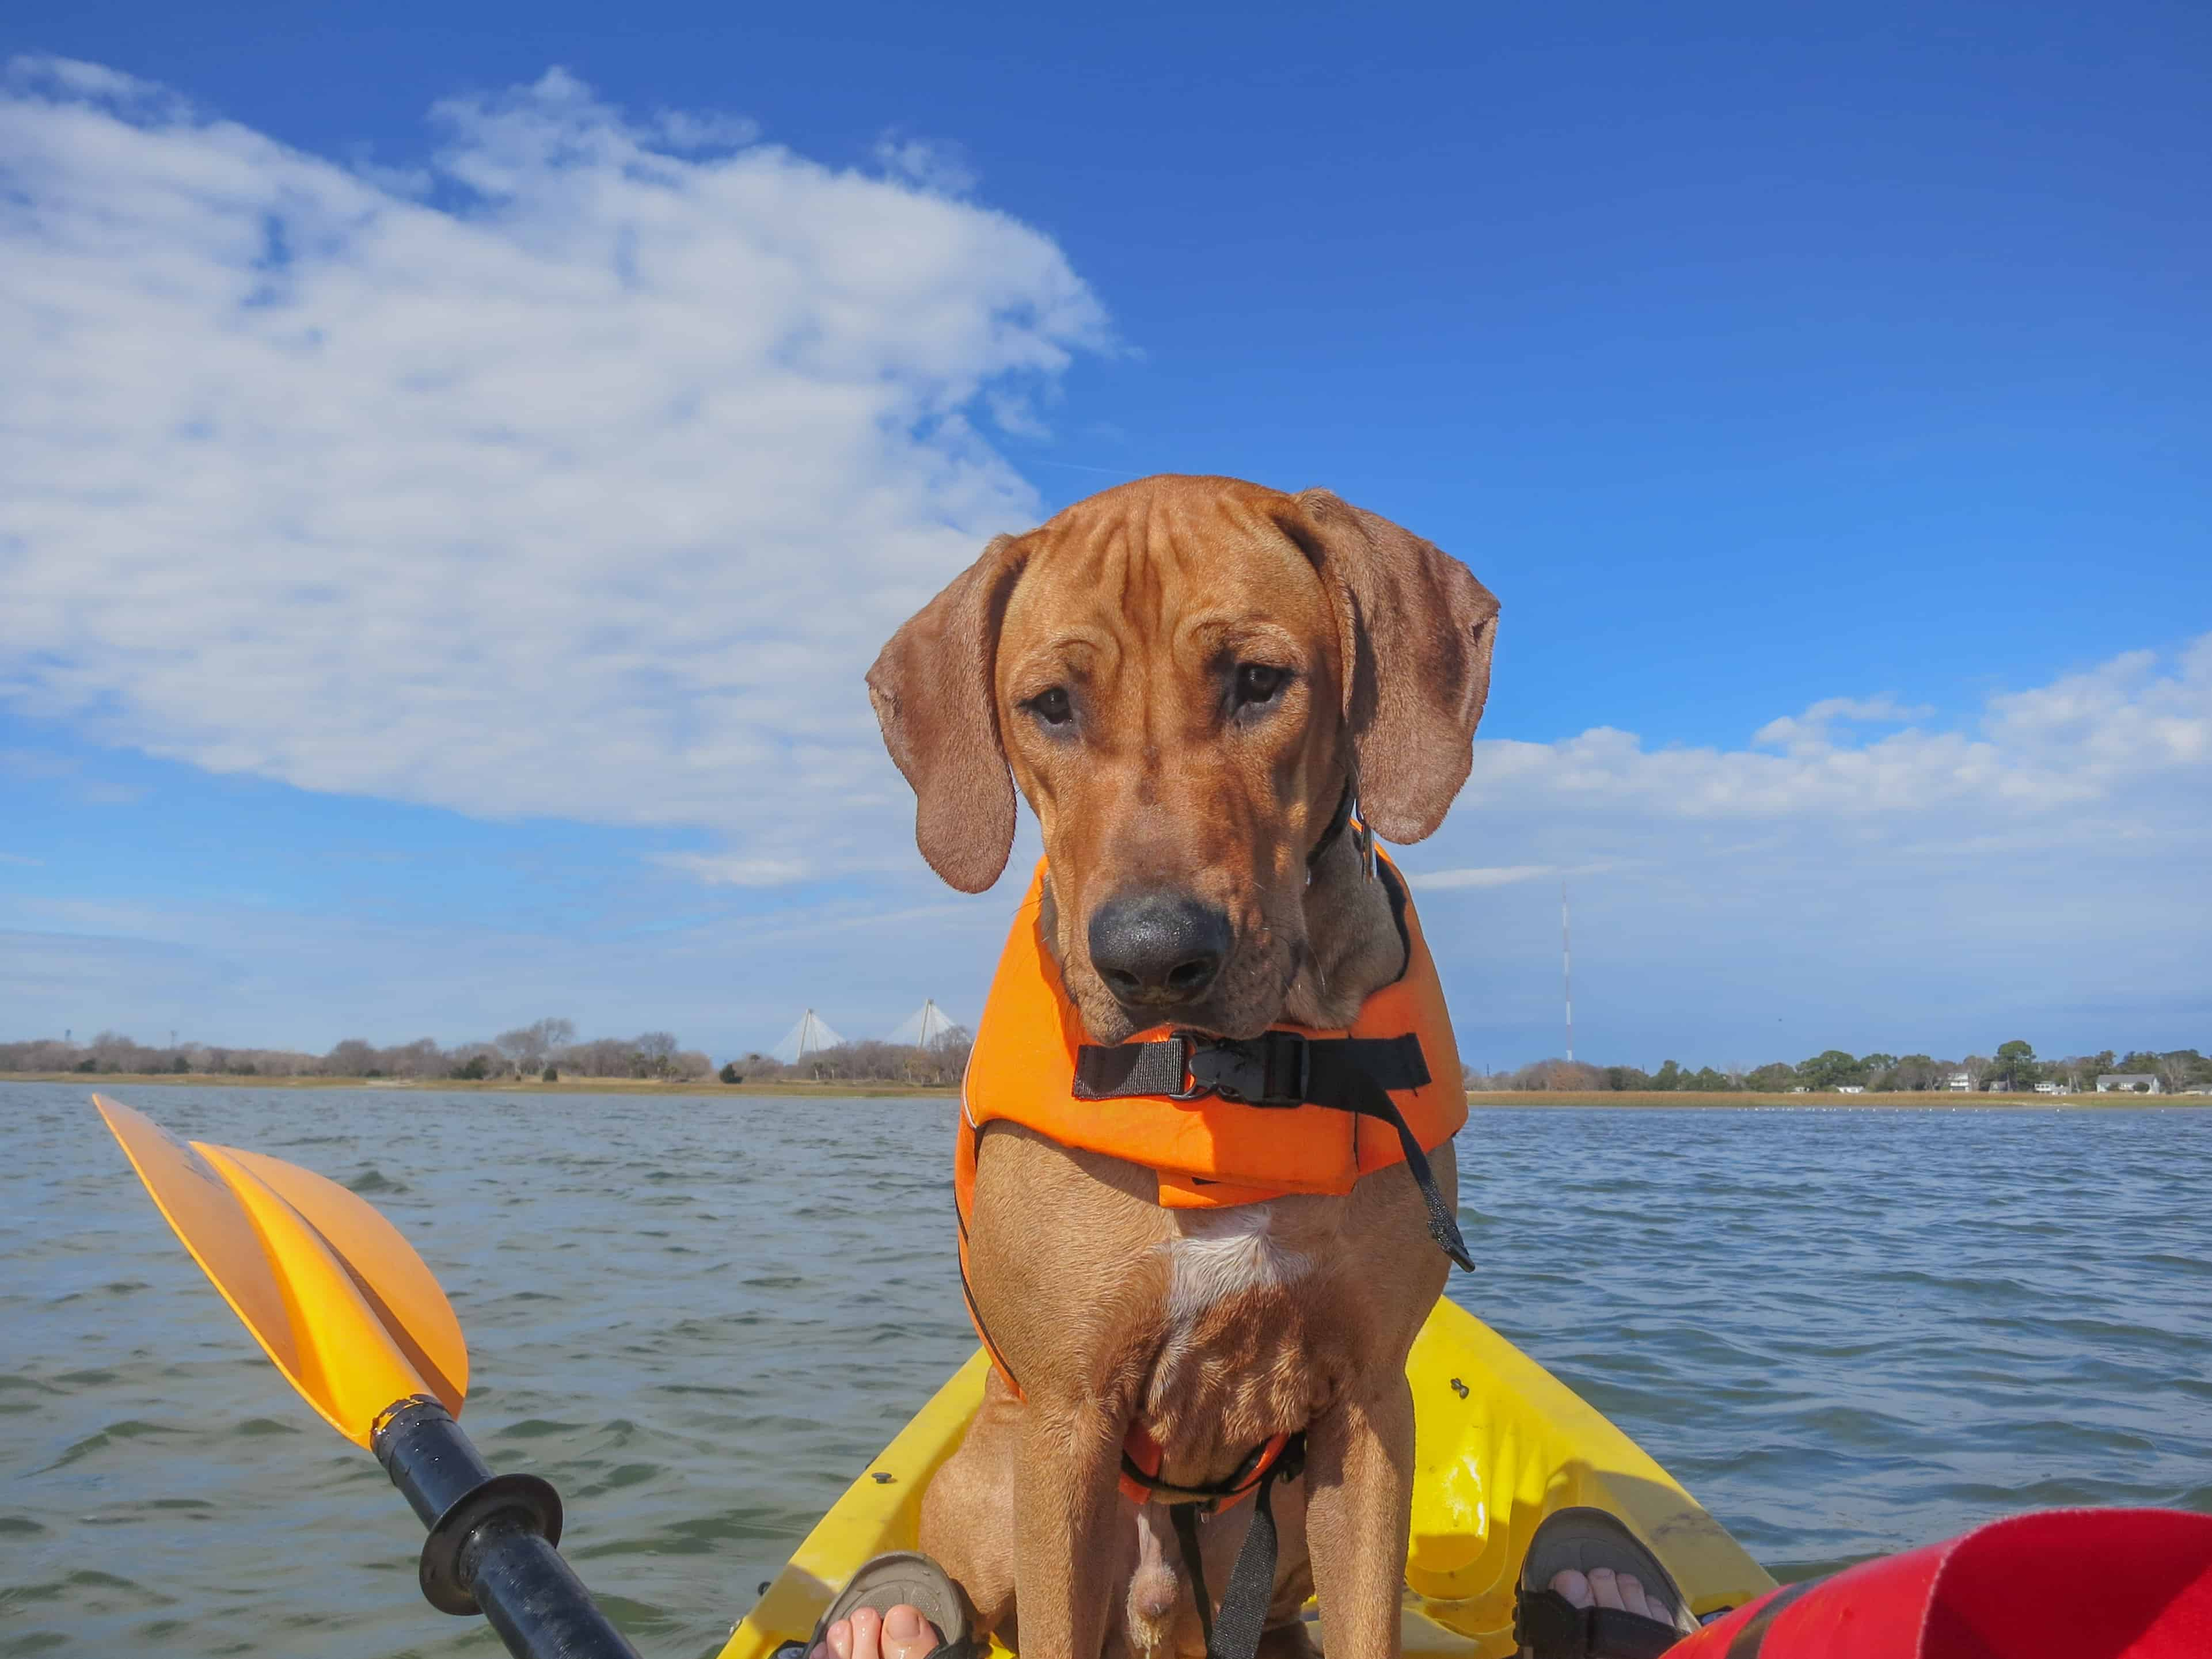 Rhodesian Ridgeback, adventure, dog-friendly, vacation, puppy